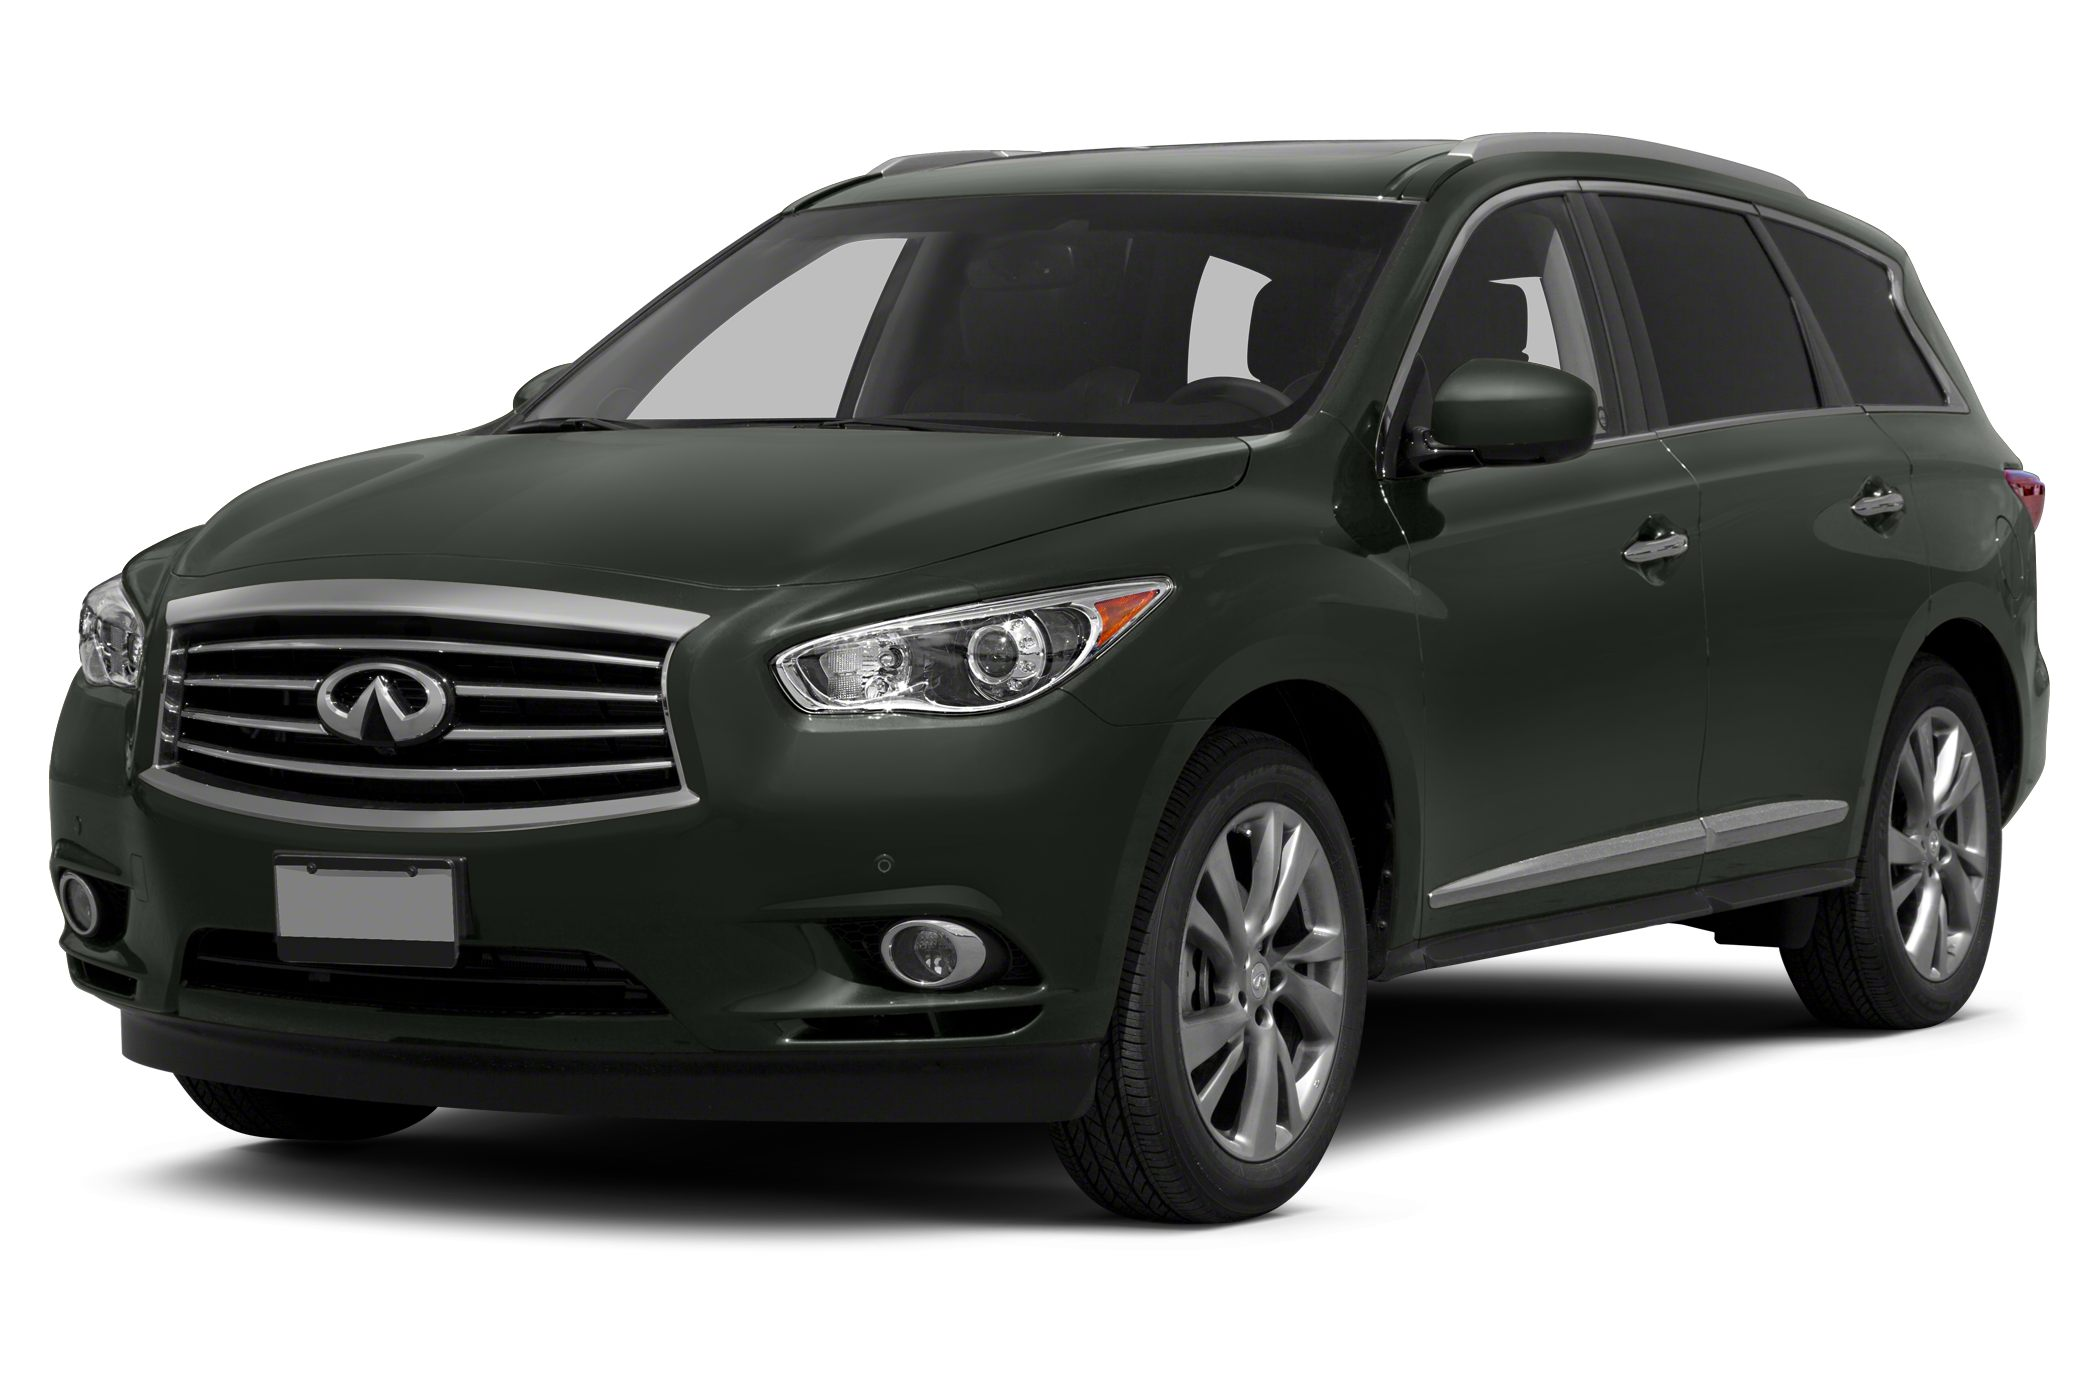 2013 infiniti jx35 base 4dr all wheel drive sport utility information vanachro Image collections